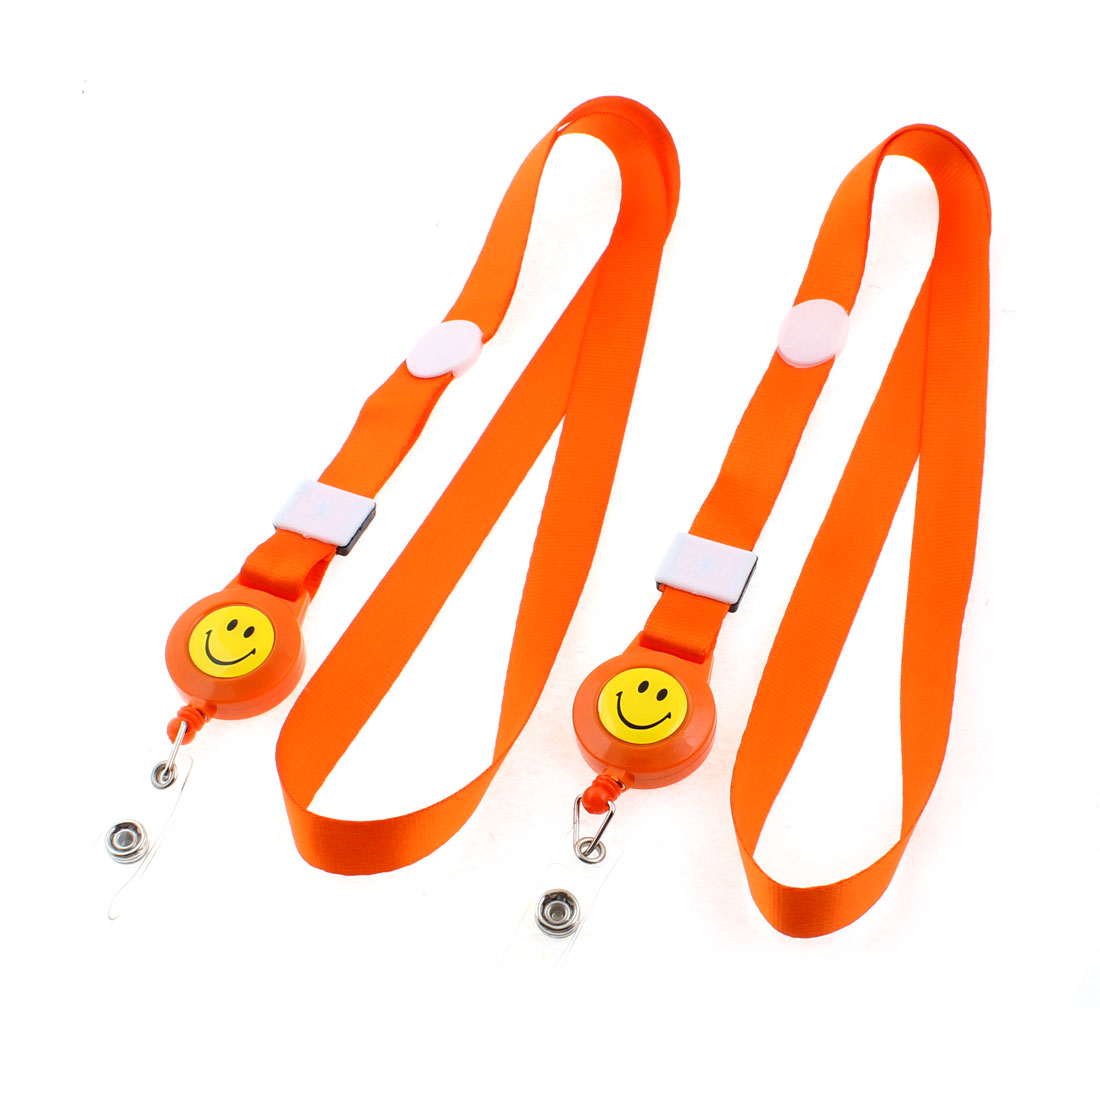 Smile Face Pattern Name Company Photo ID Card Holder Neck Strap Orange 2PCS